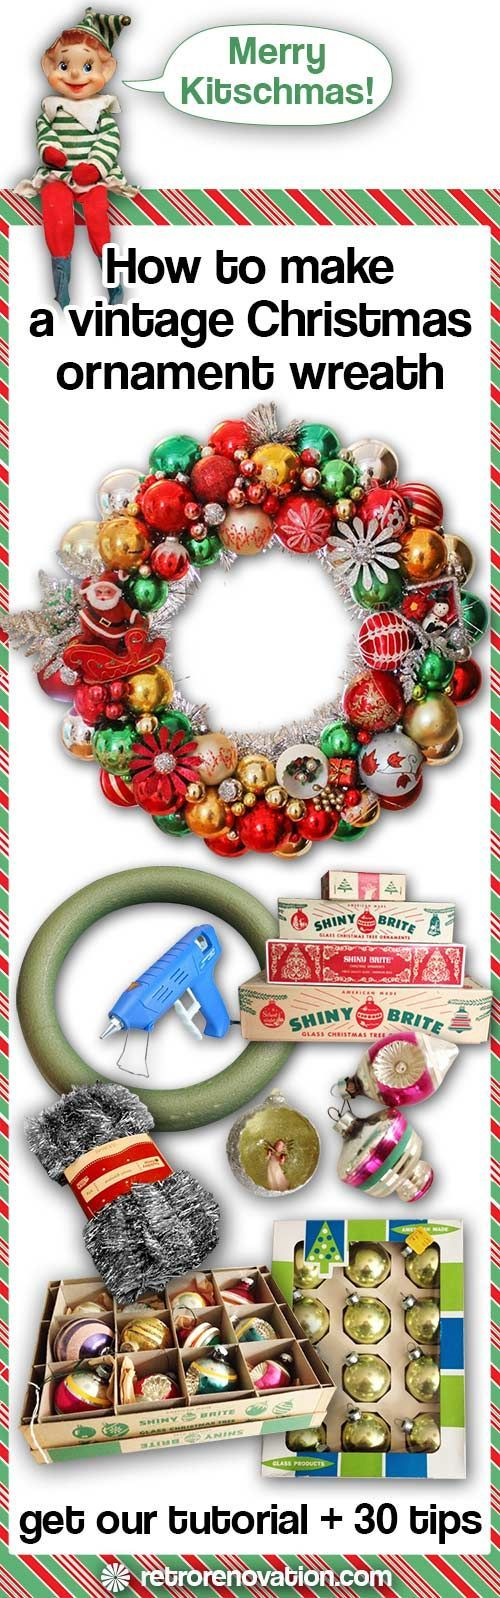 Christmas wreath ornaments - Our Tutorial And 30 Tips To Make Your Own Vintage Christmas Ornament Wreath